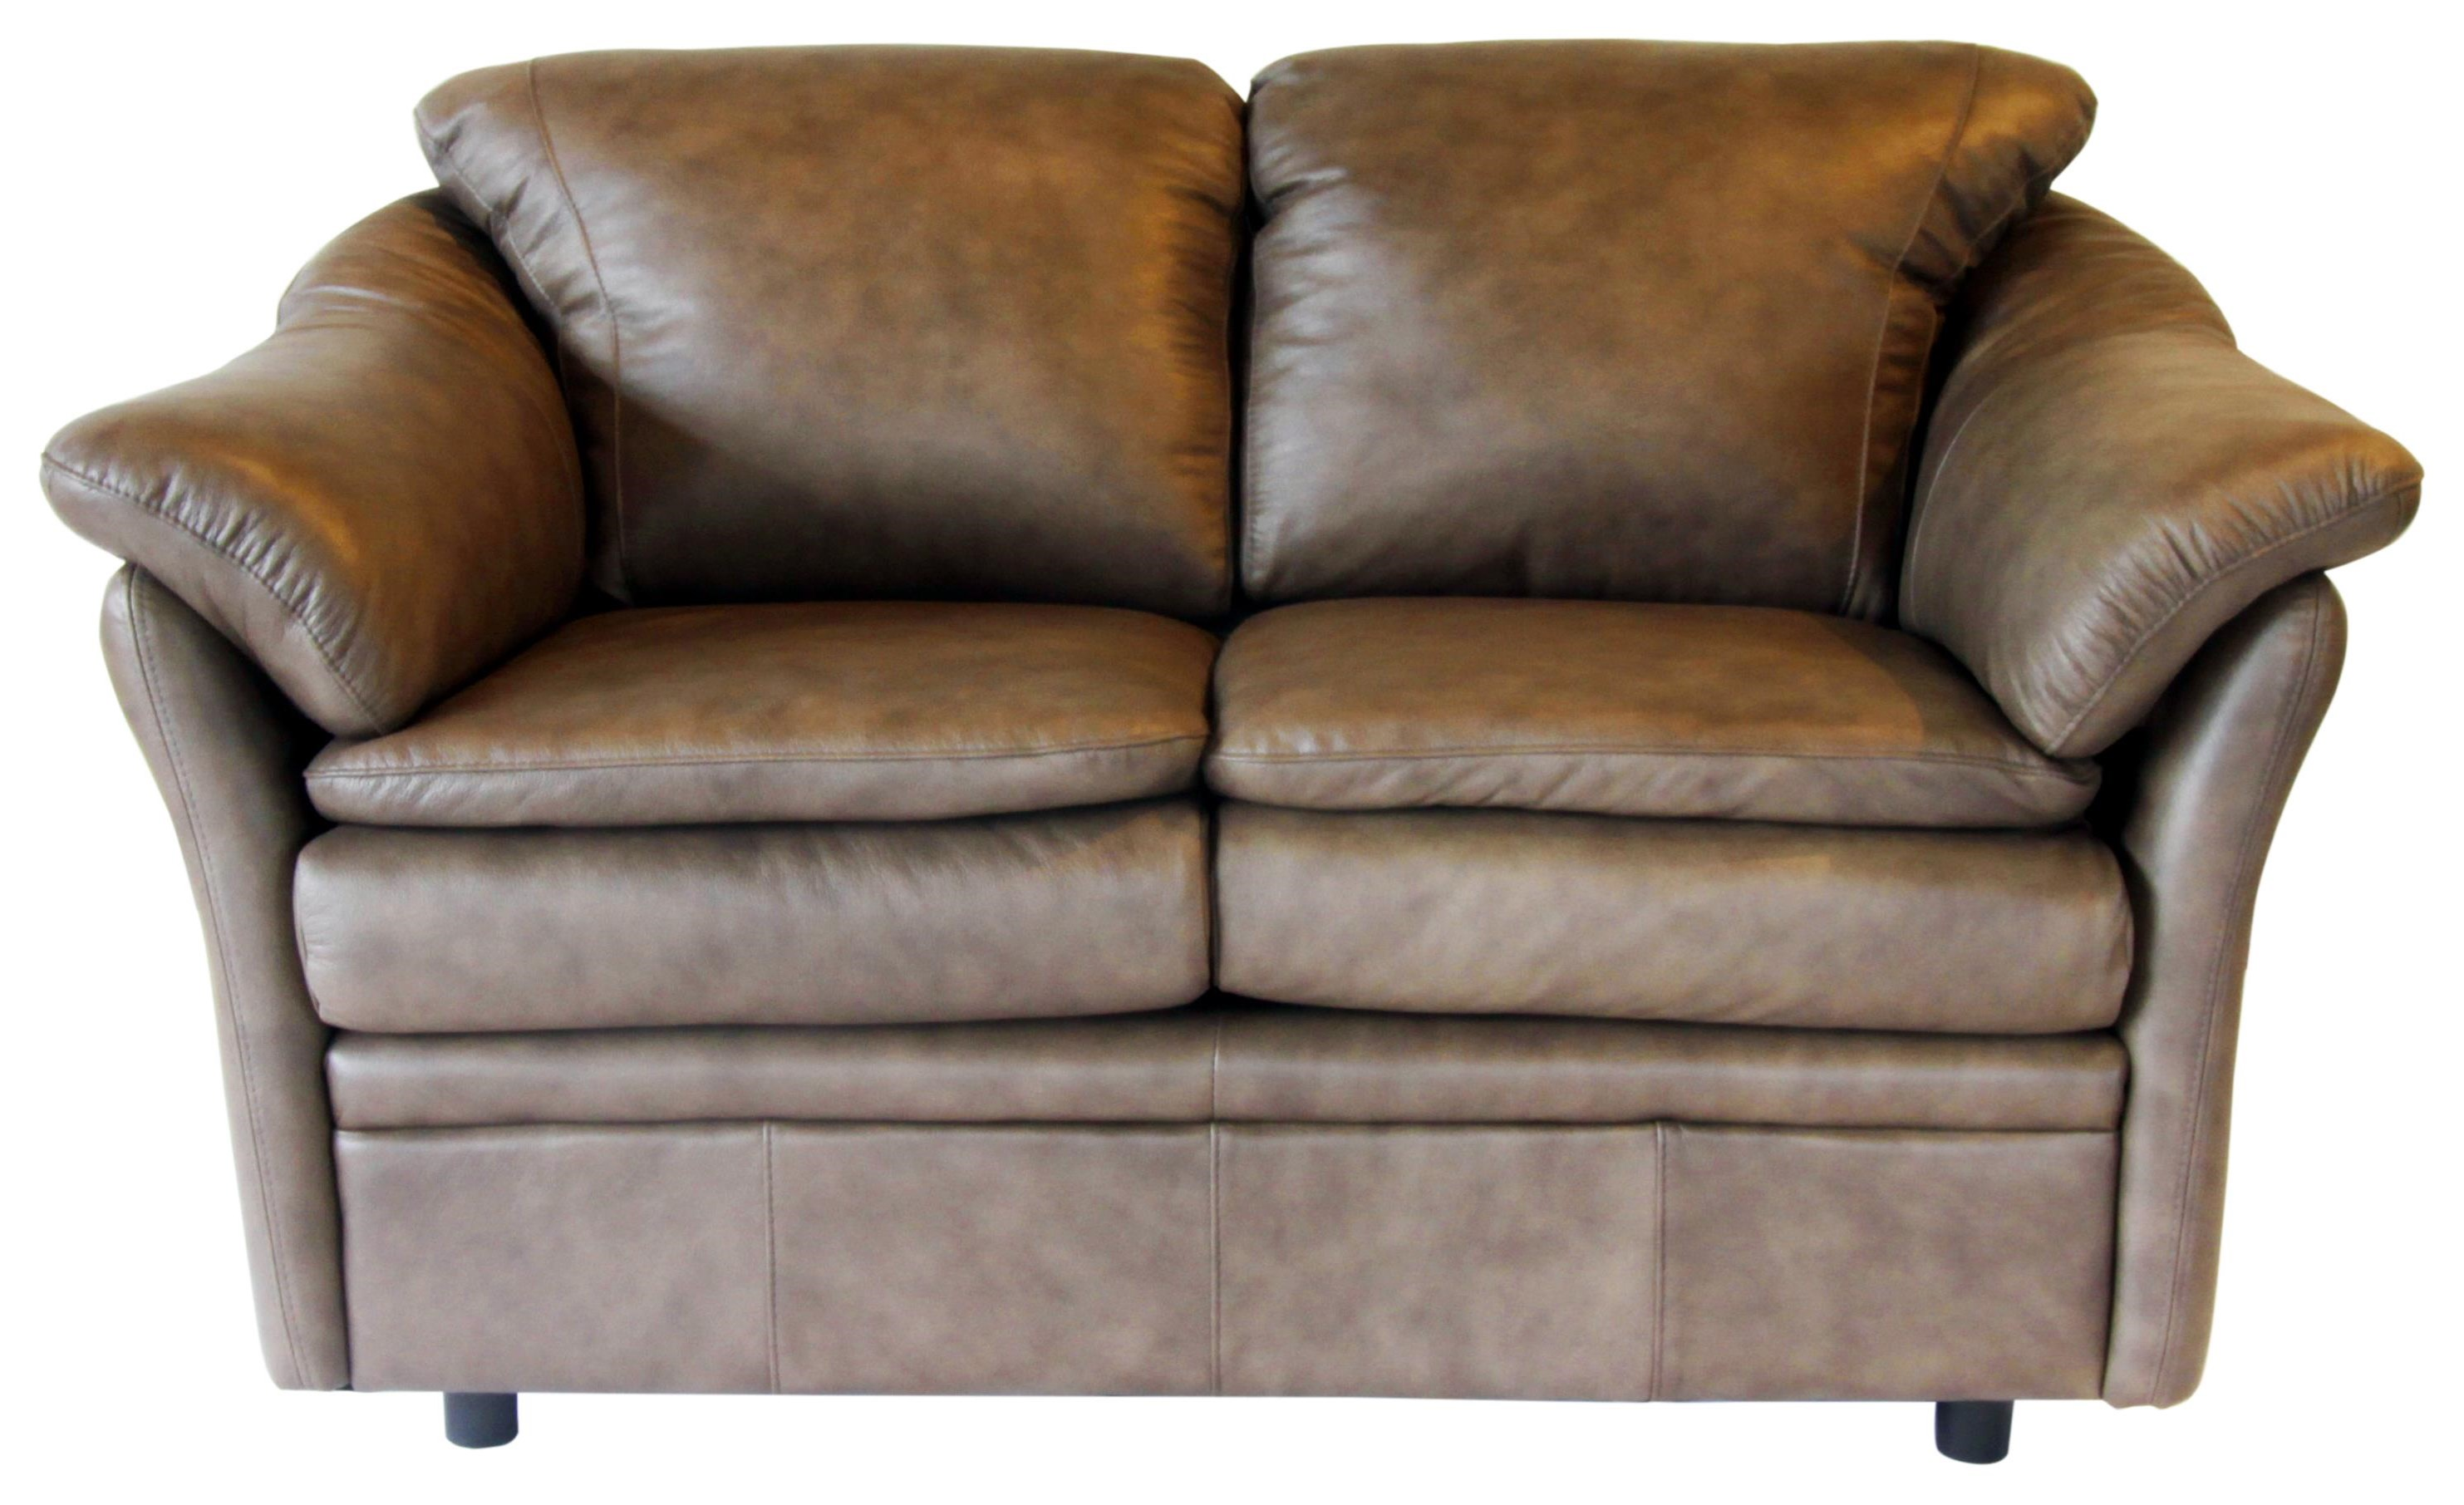 Omnia Leather Uptown Loveseat - Item Number: 13004